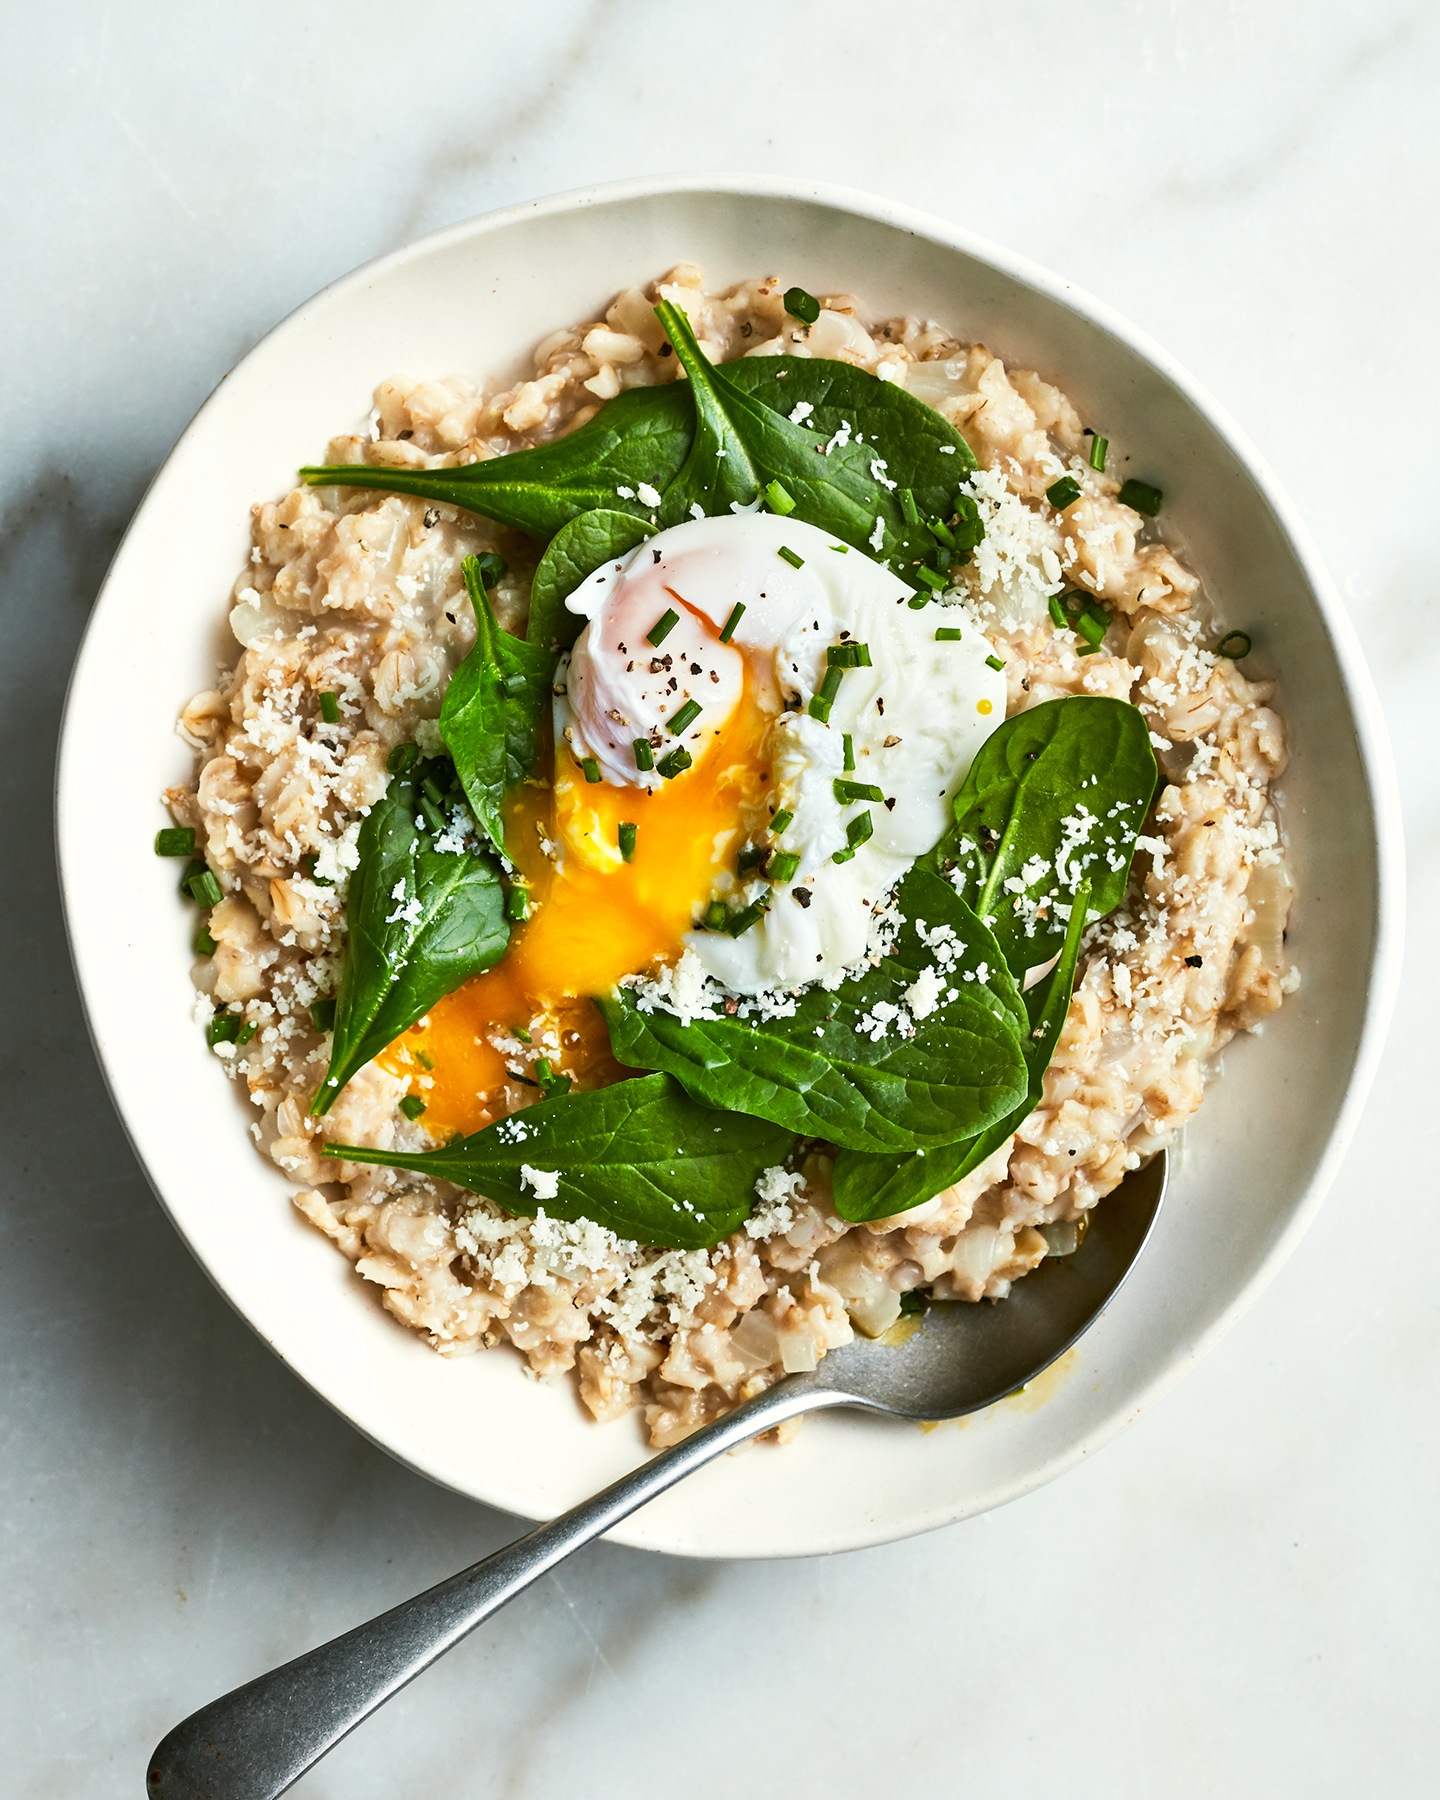 Savory Oatmeal With Spinach and Poached Eggs